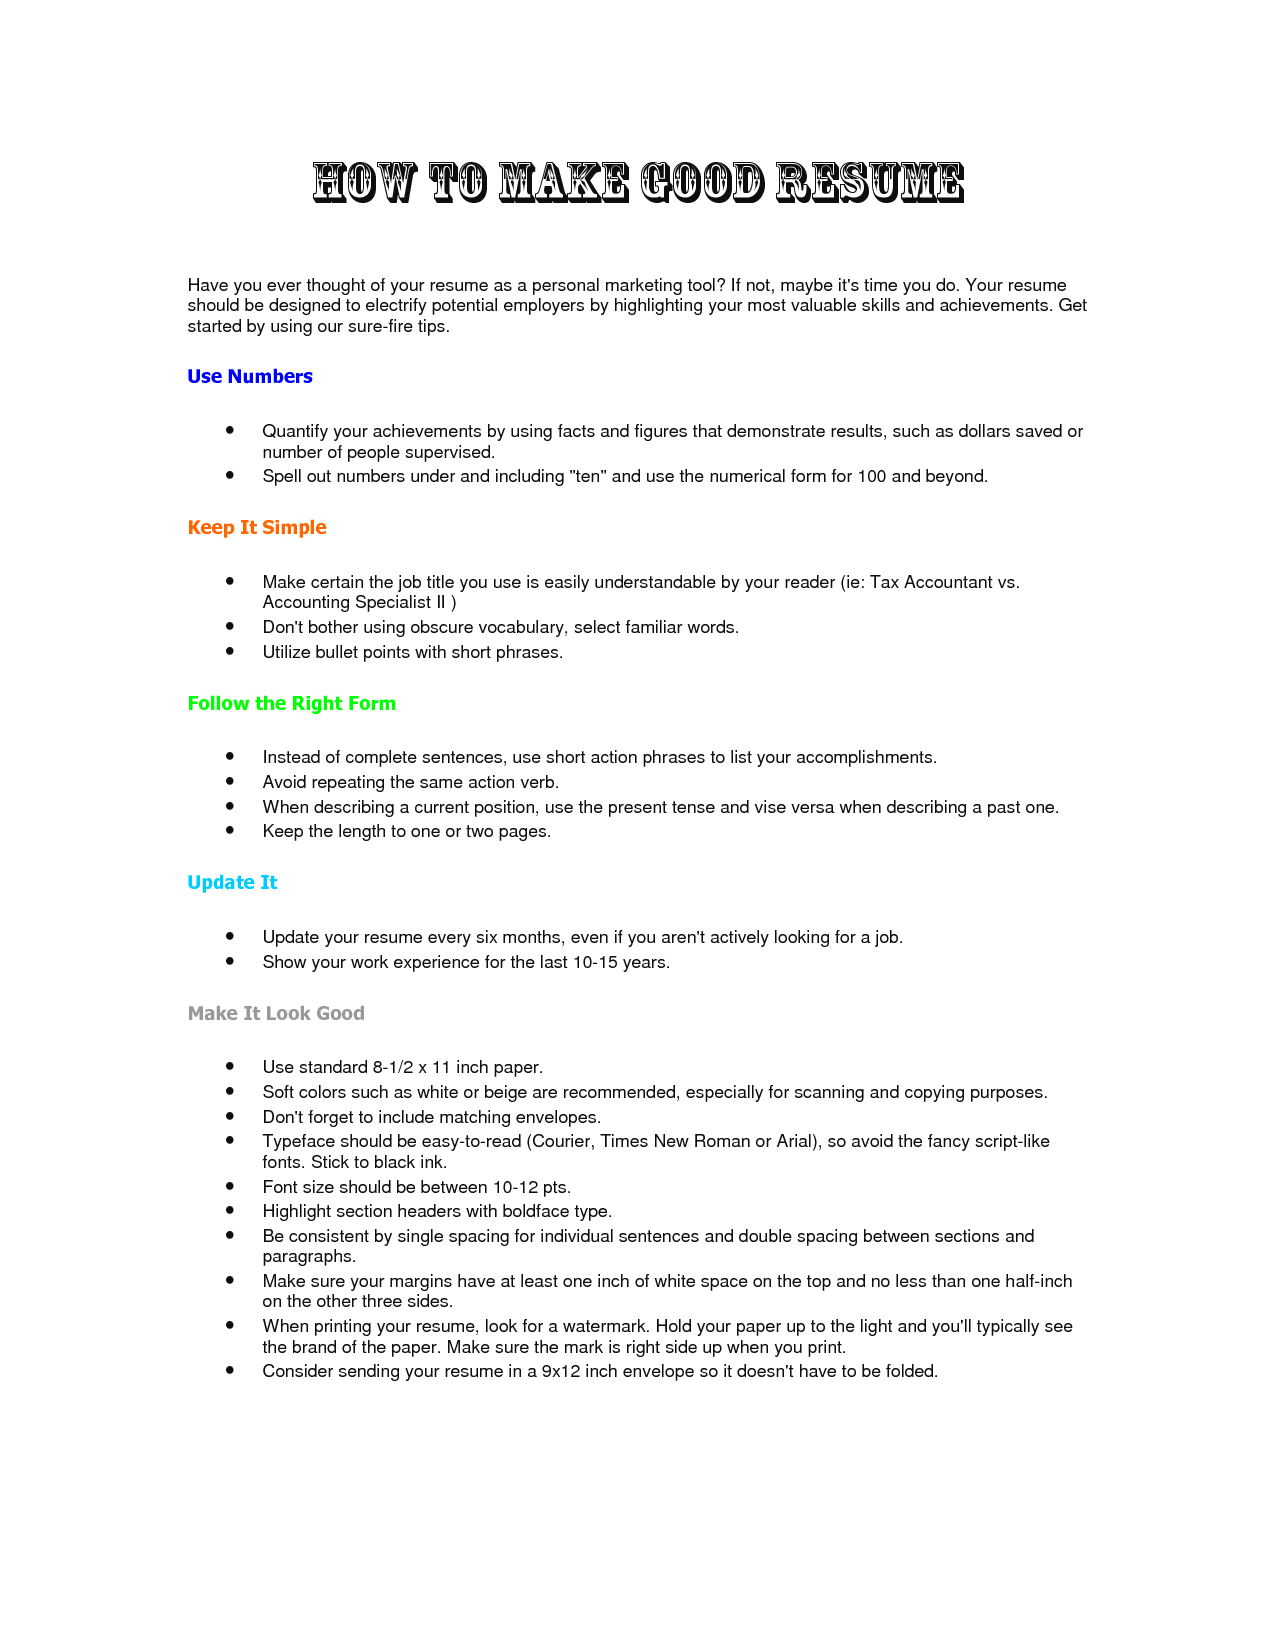 how to make a resume without using template resignation letter